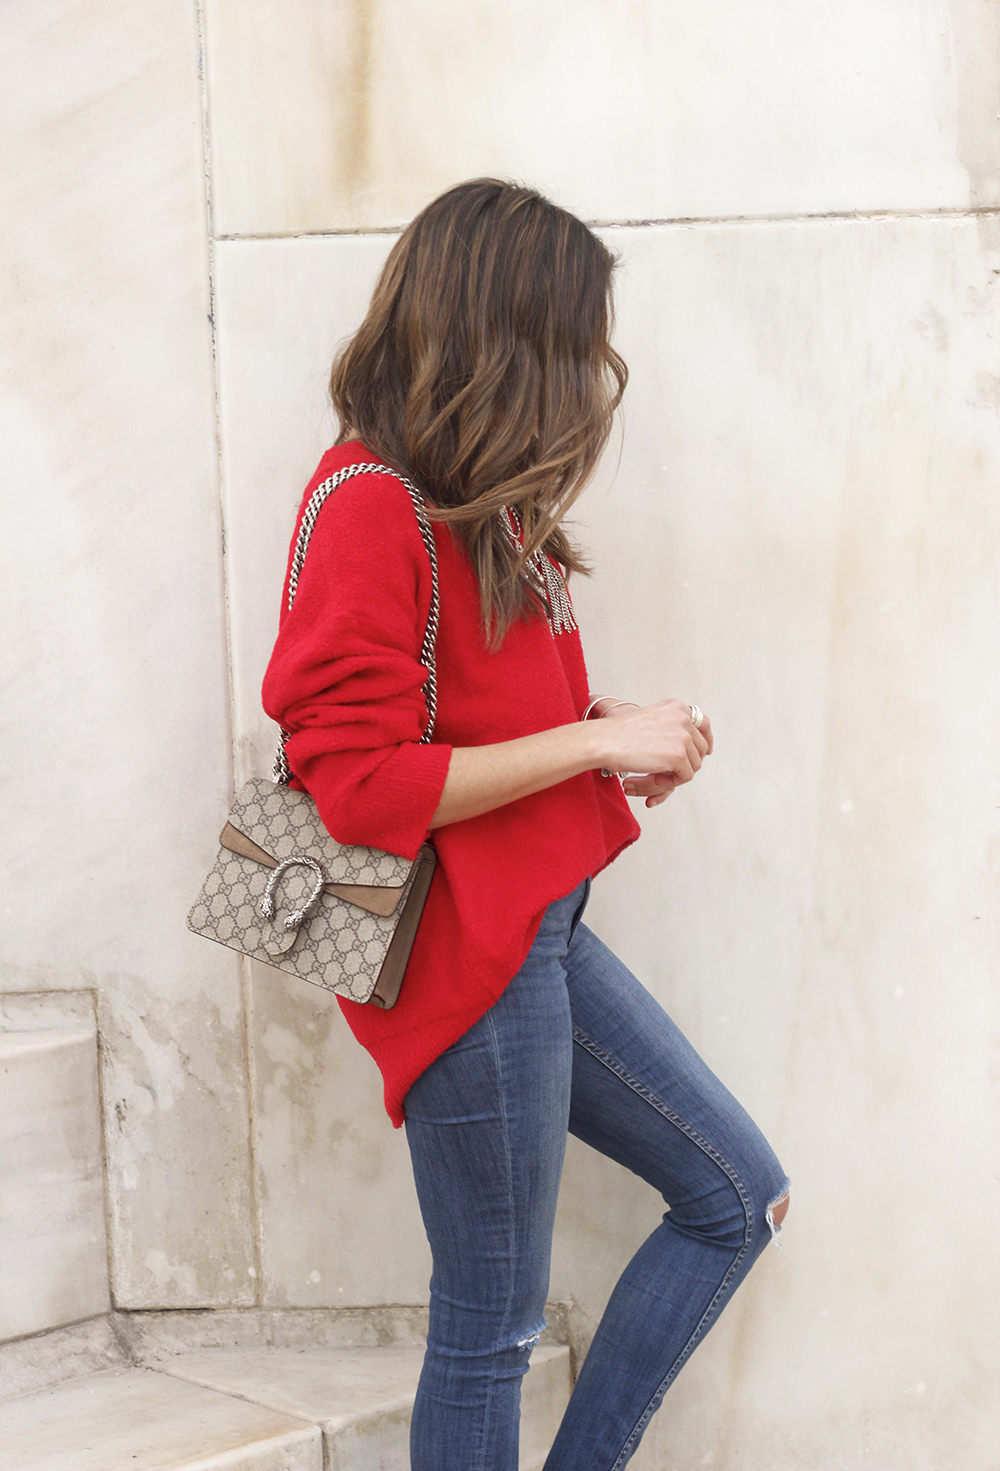 Mules Red sweater Ripped Jeans gucci bag céline sunnies fashion outfit style trend10